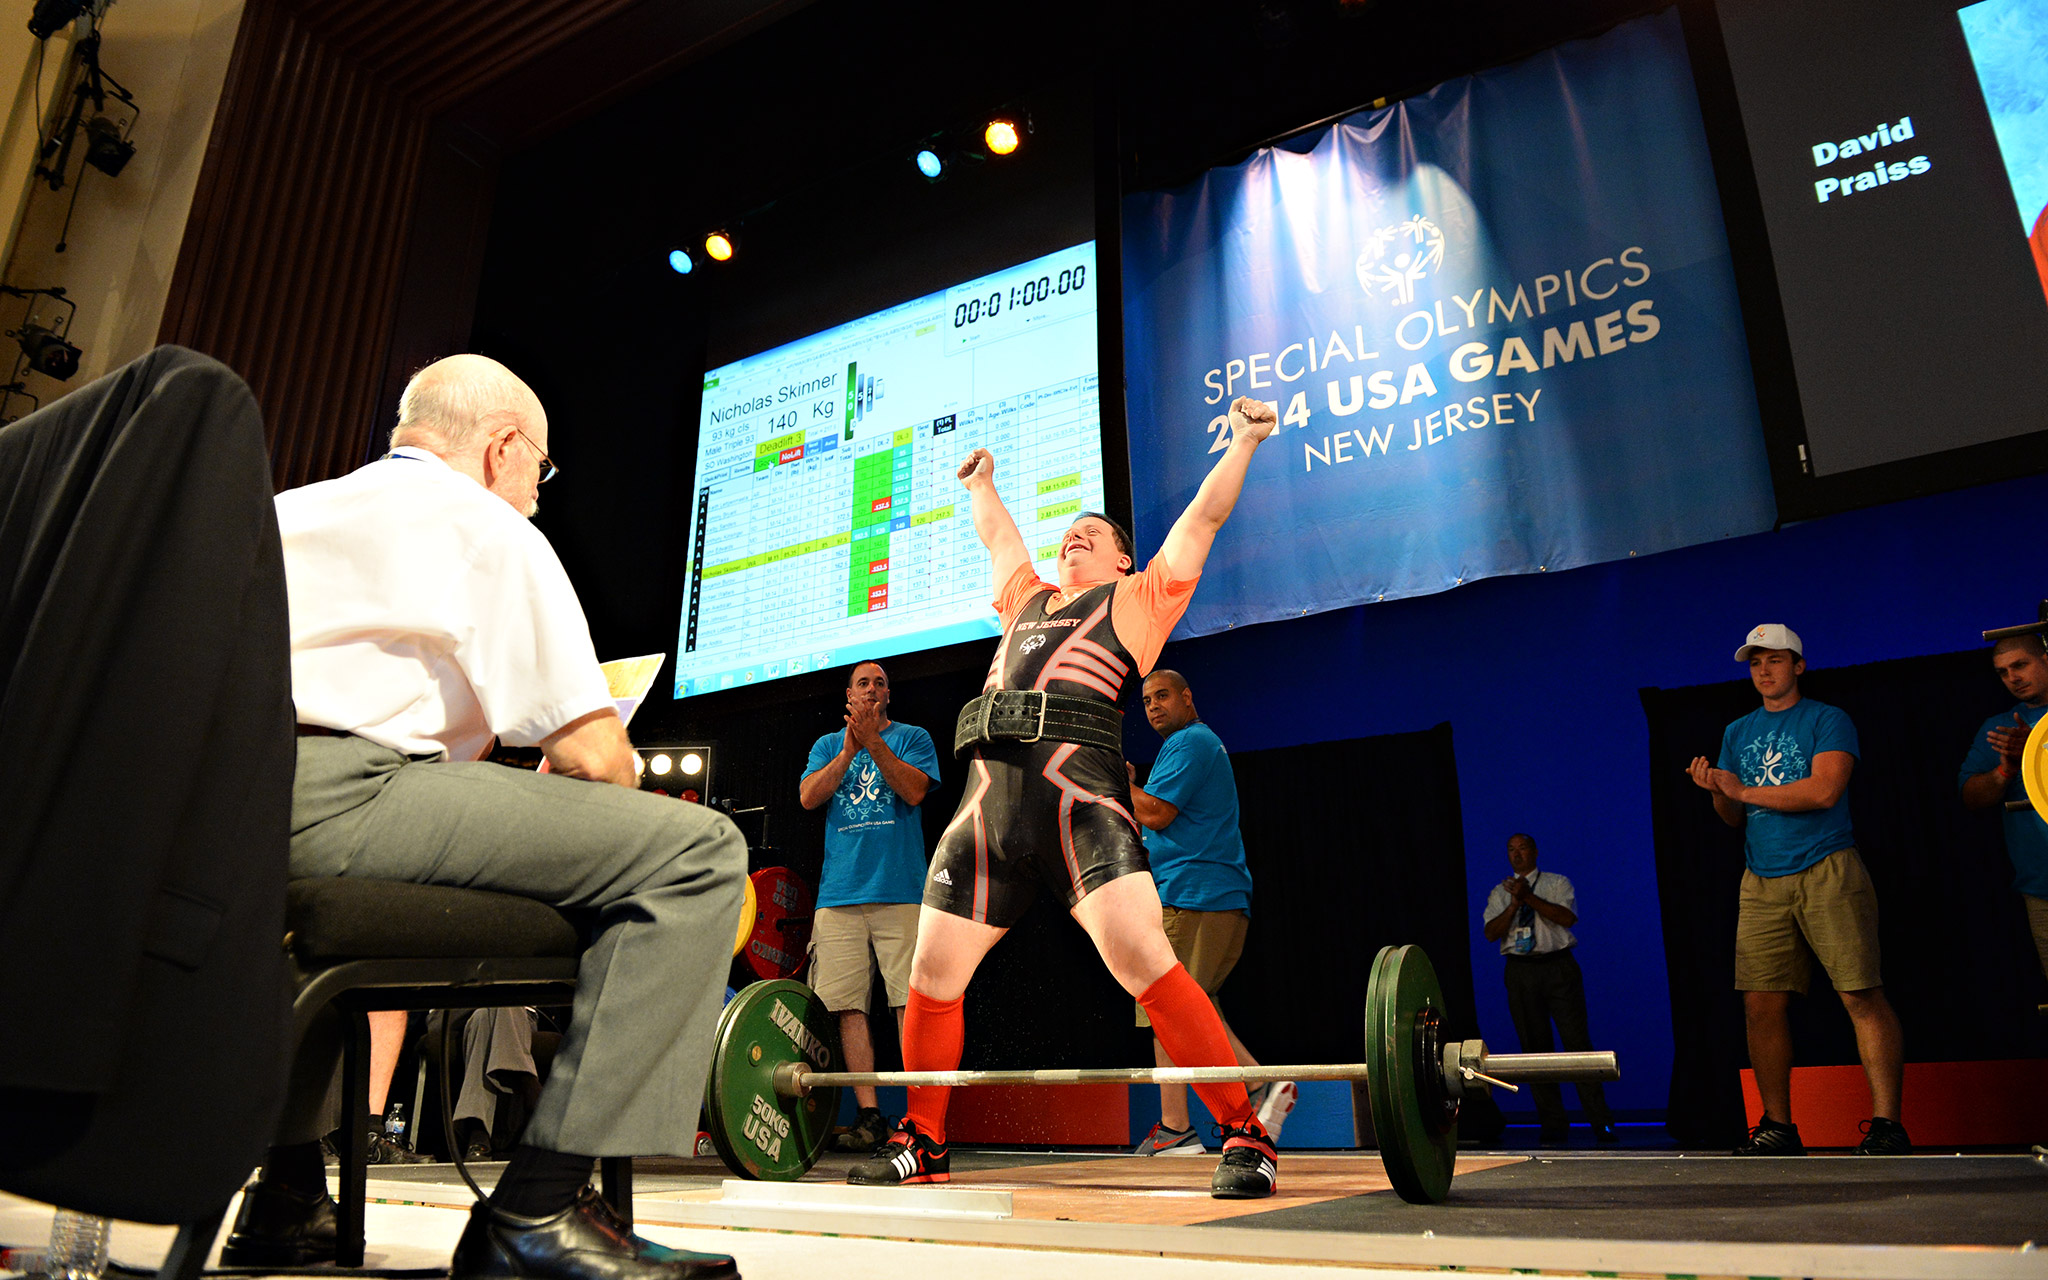 David Praiss of New Jersey took gold in the bench press and squat, bronze in the dead lift, and gold in the all-around in his division. He has competed in Special Olympics for 33 years.